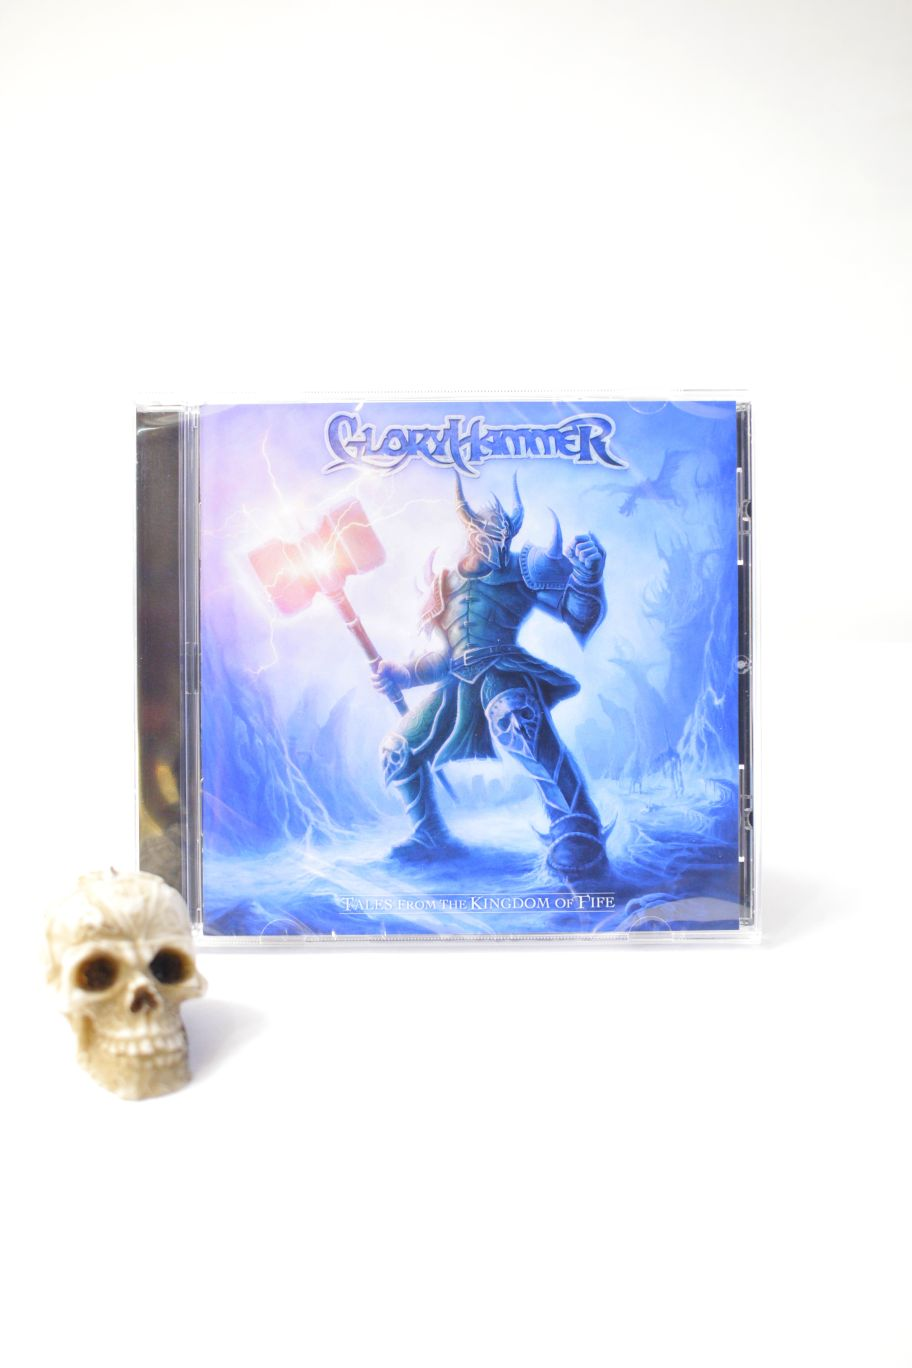 CD GLORYHAMMER TALES FROM THE KINGDOM OF FIFE